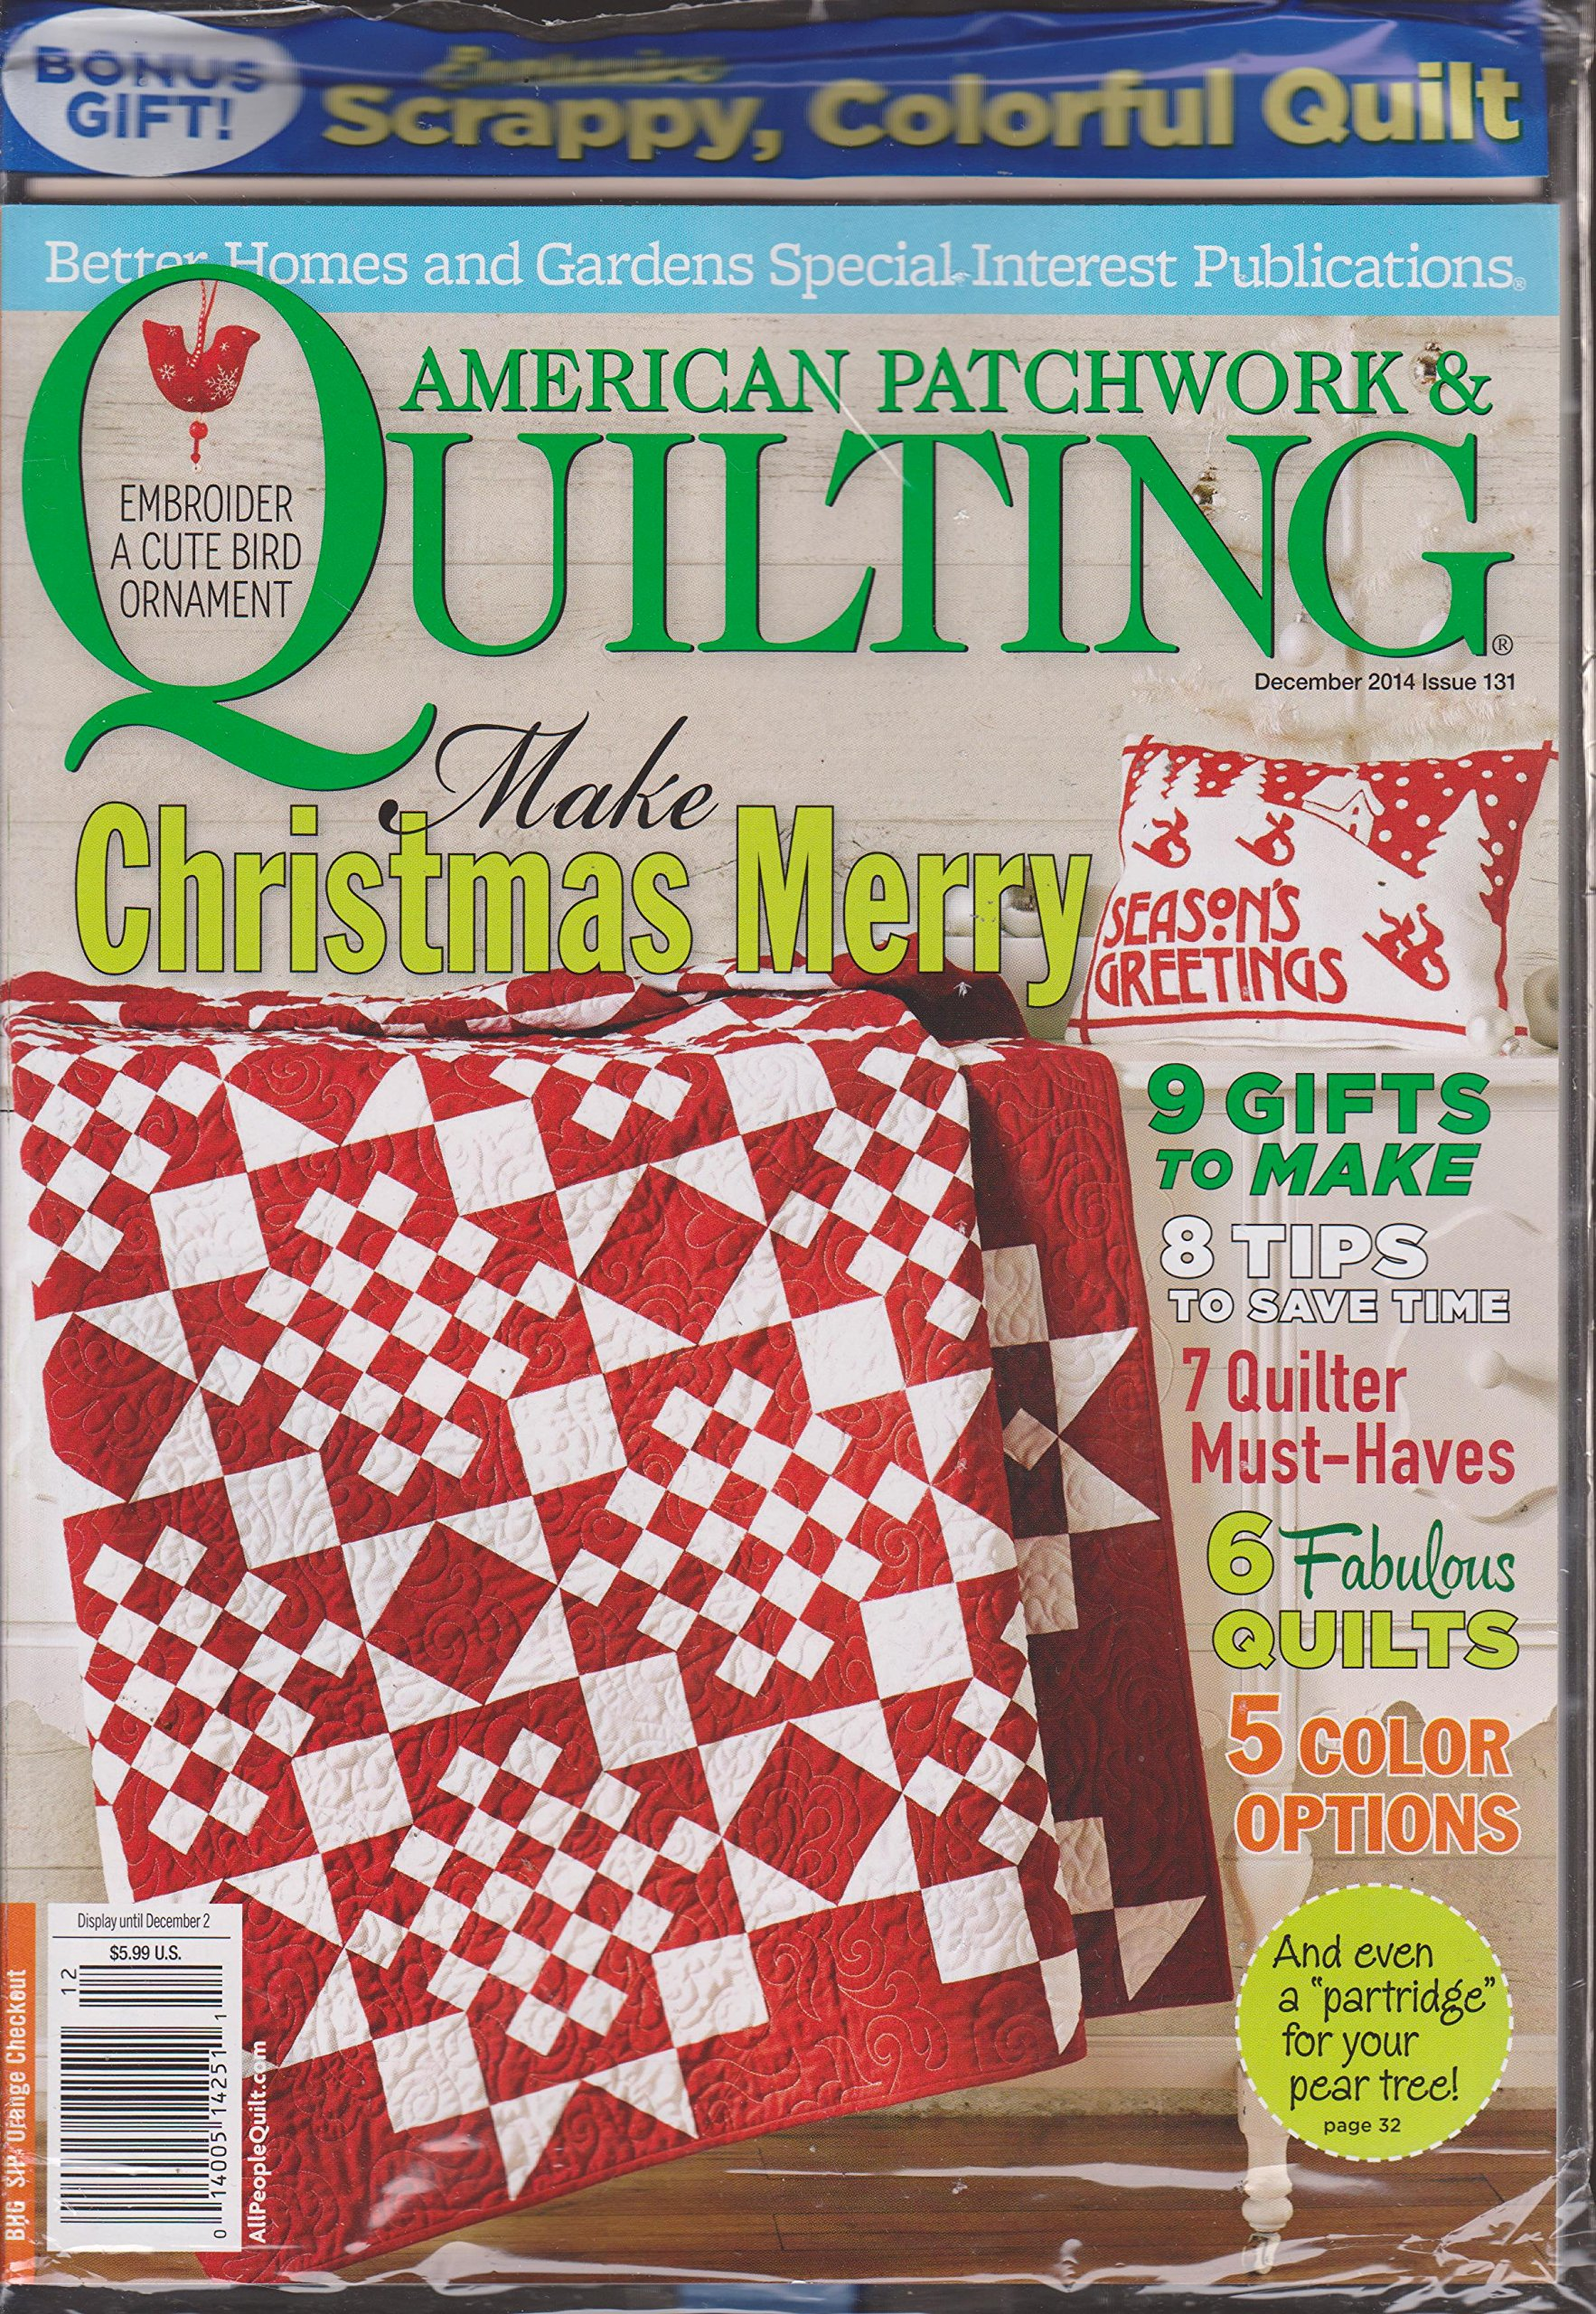 be pick edition to went and i s magazine will up quilting find inside you with webw that latest quilt sale on farmer just the sure american feb working loved patchwork this